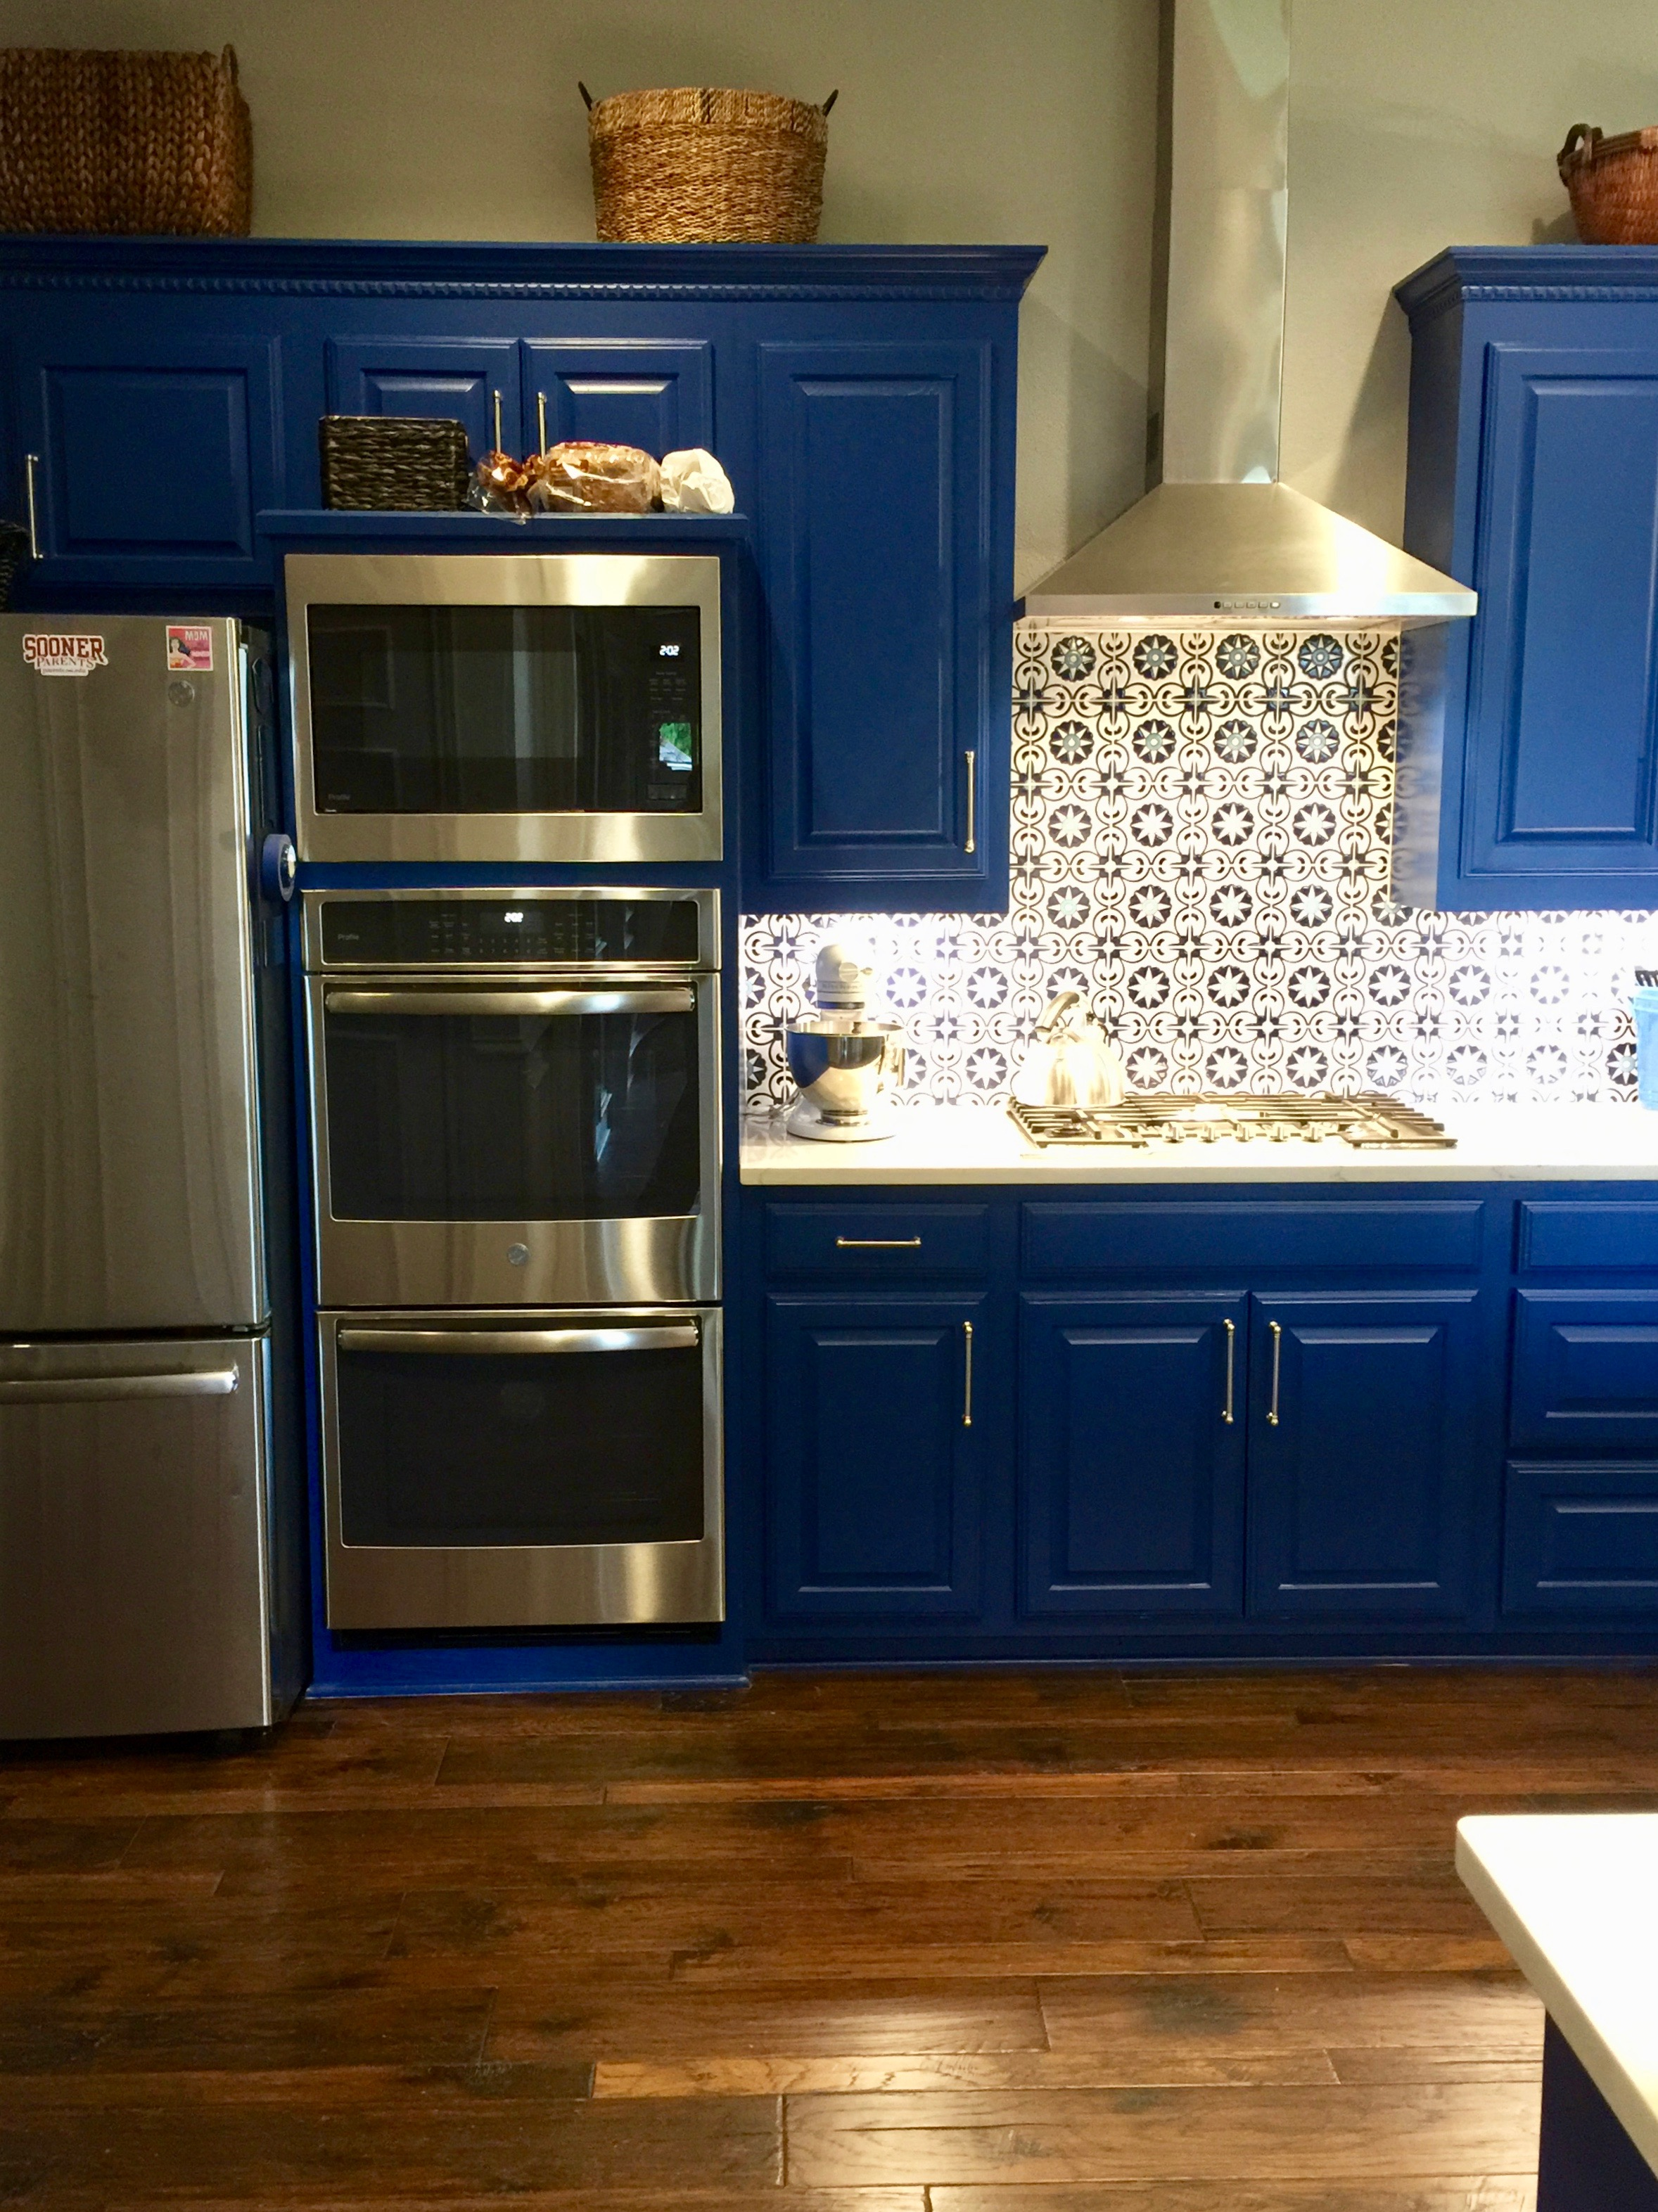 Cambria Ella + - The customer created her own Fireclay Tile design!